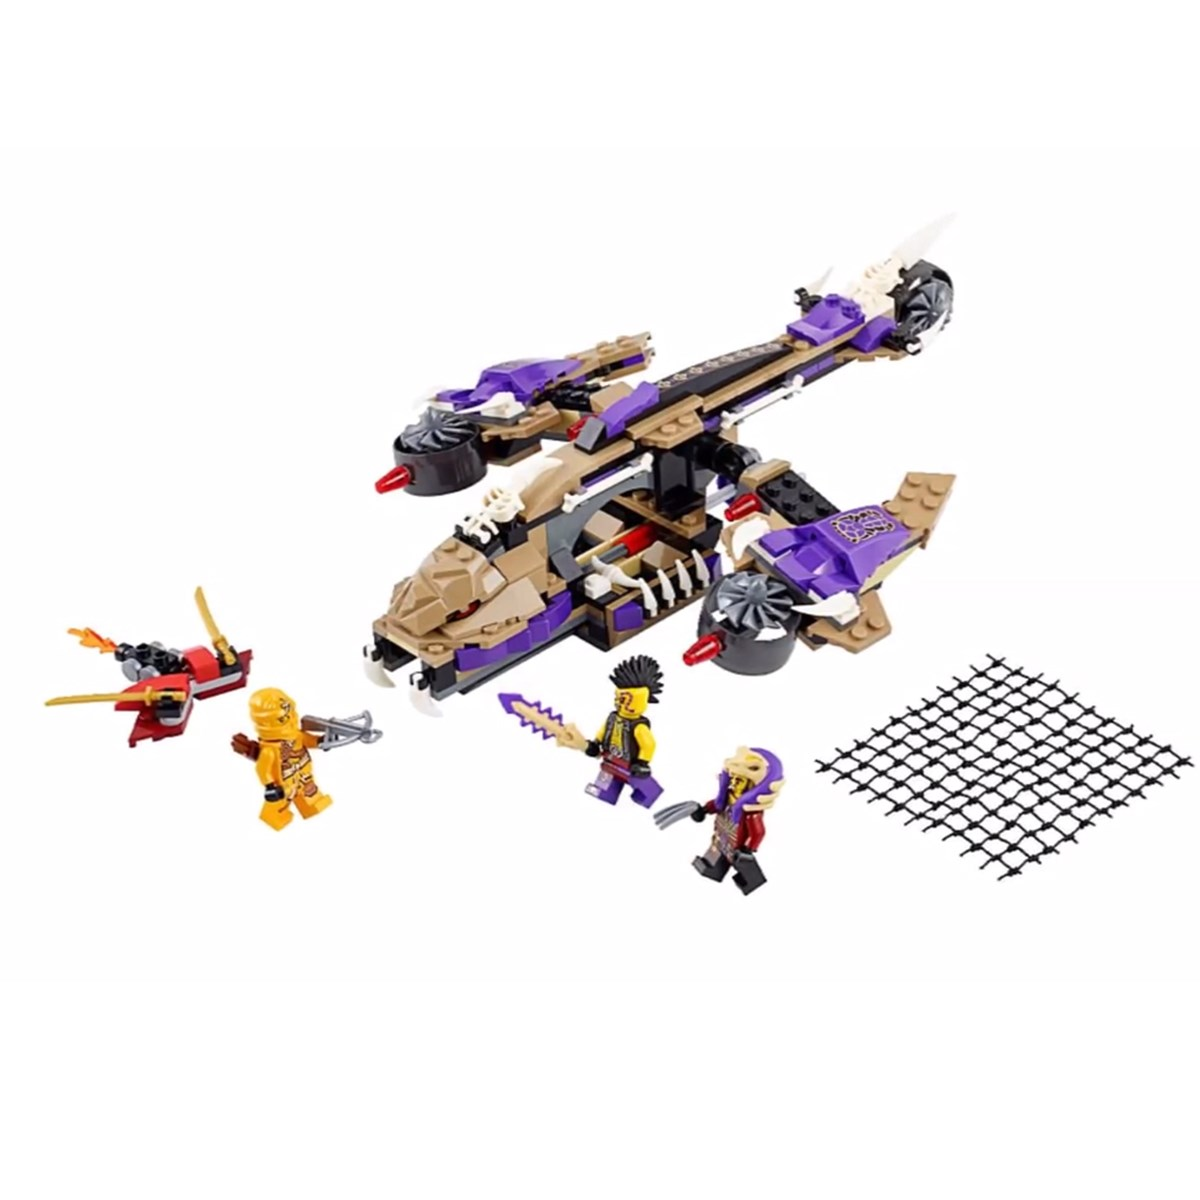 LEGO Ninjago - May bay doc xa 70746